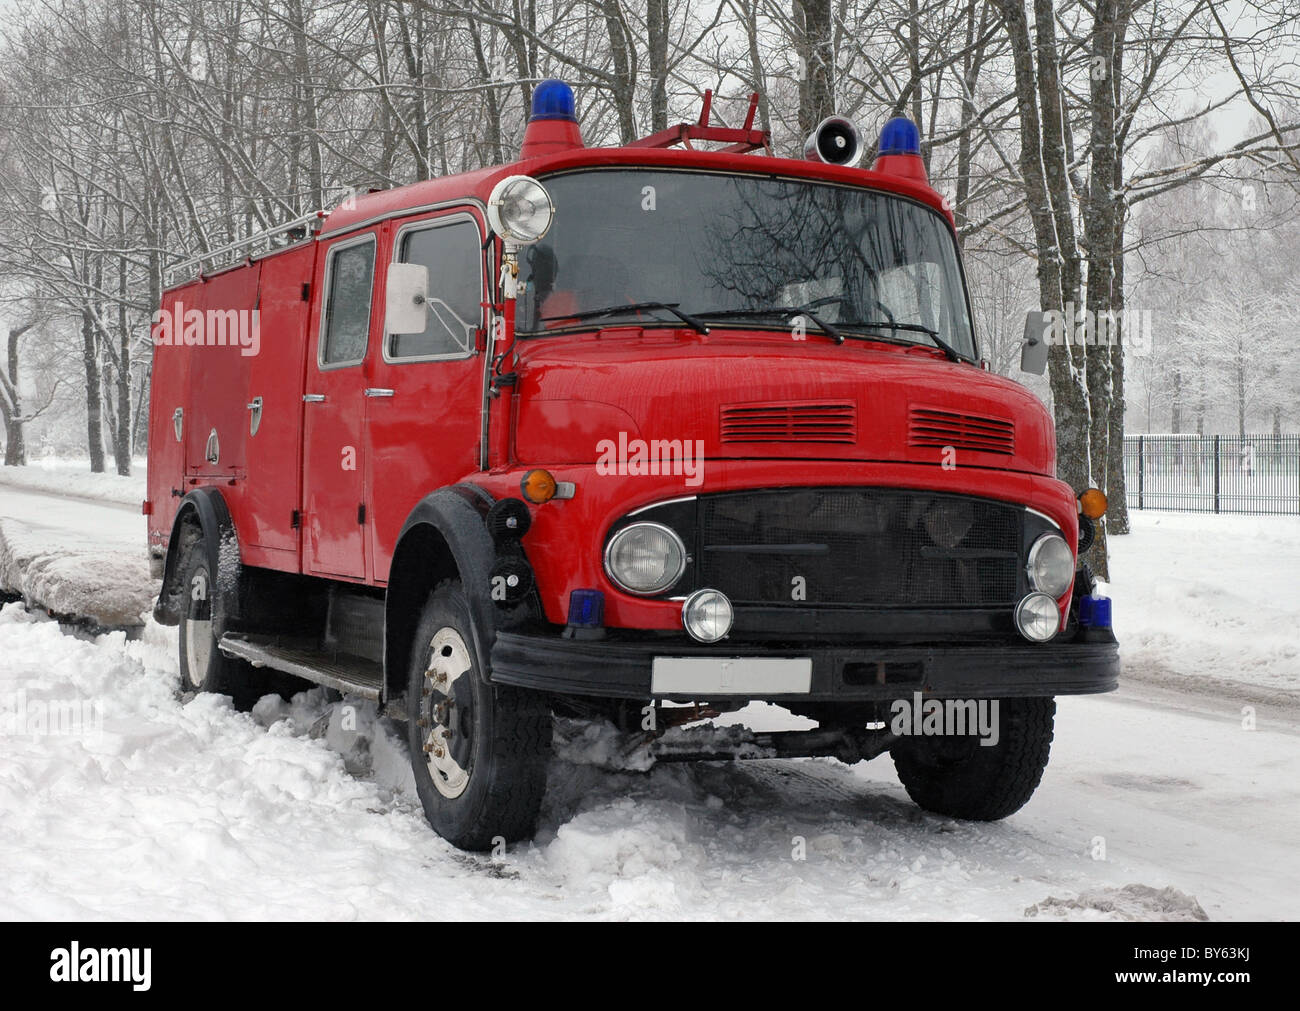 Vintage Fire Truck At Winter   Stock Image